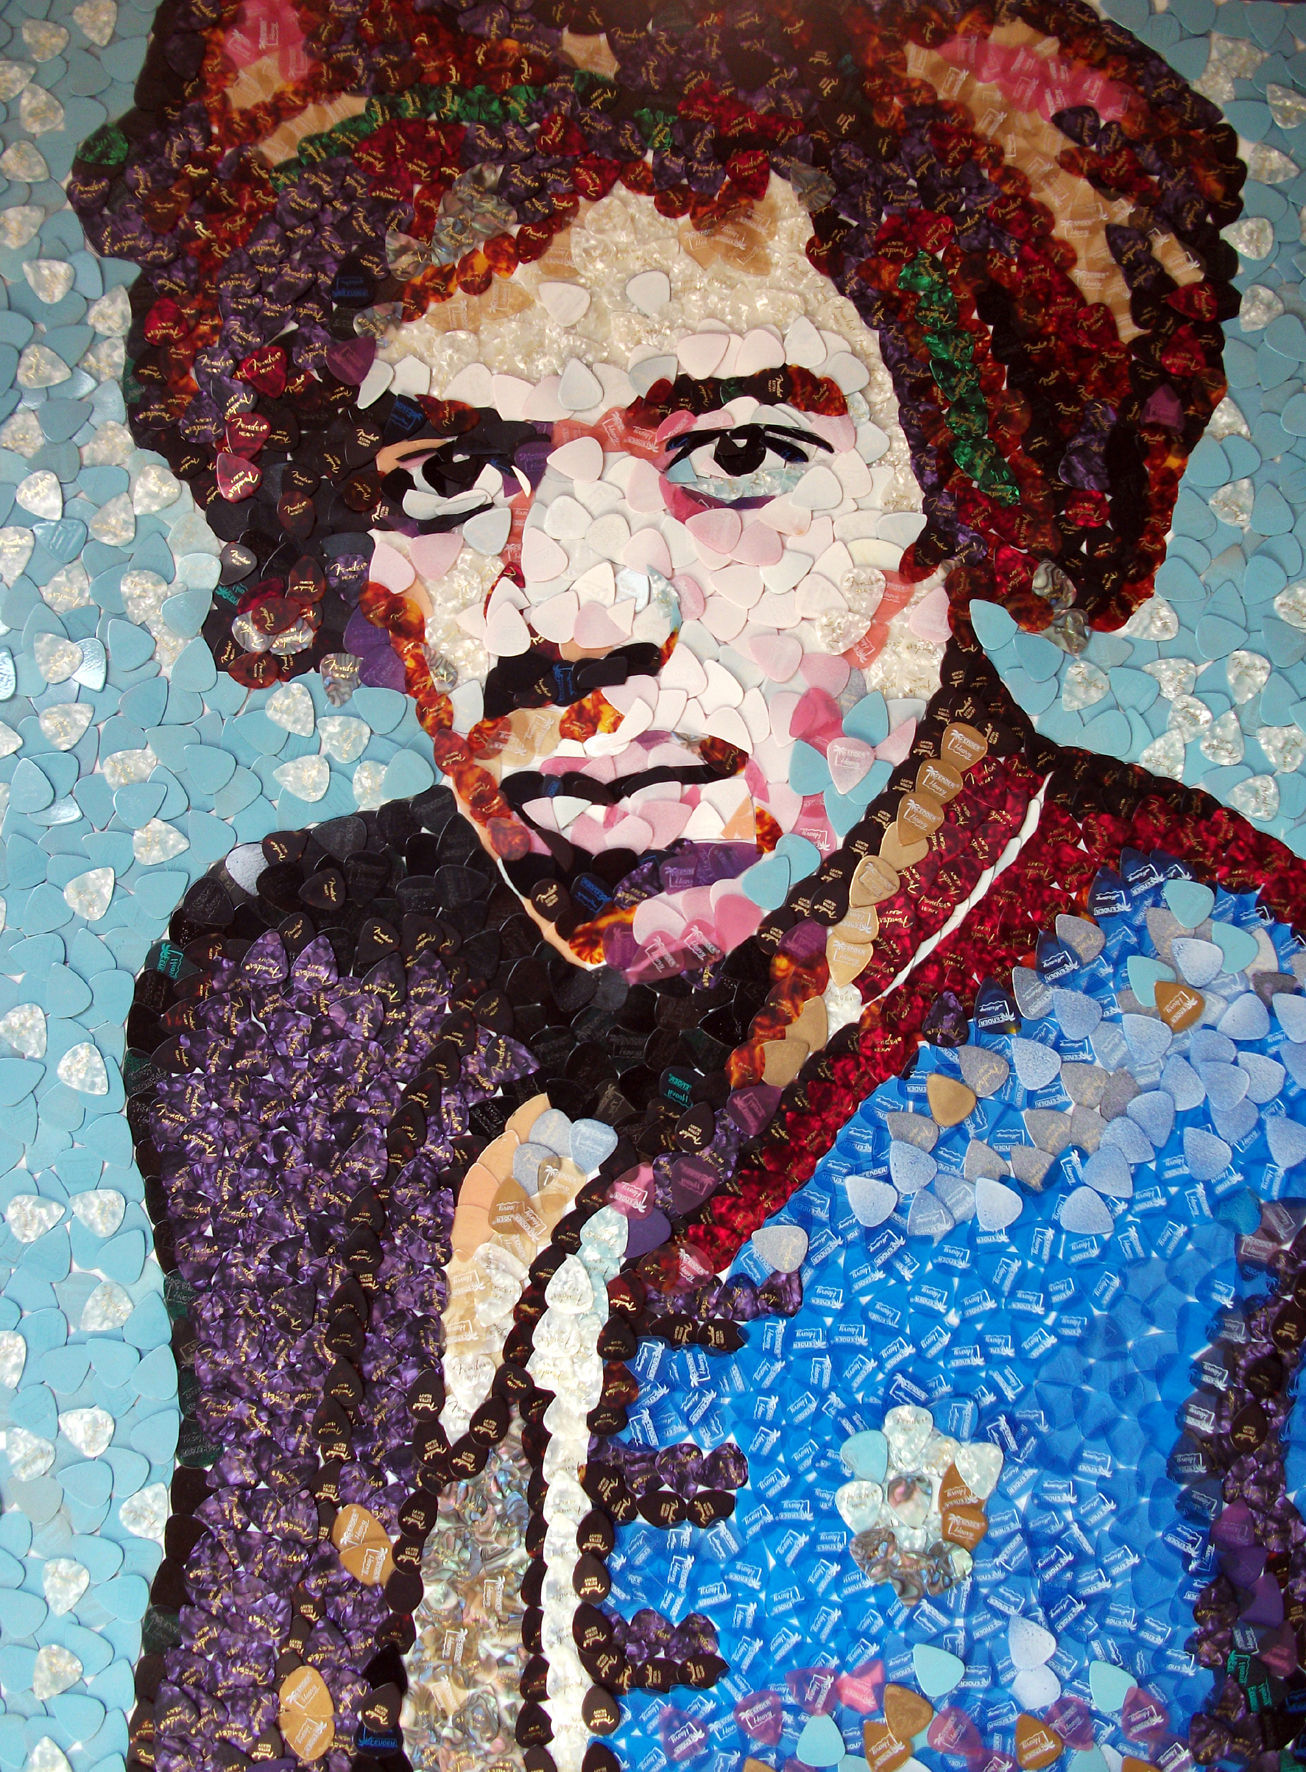 Jimi Hendrix portrait made out of plectrums to go on display